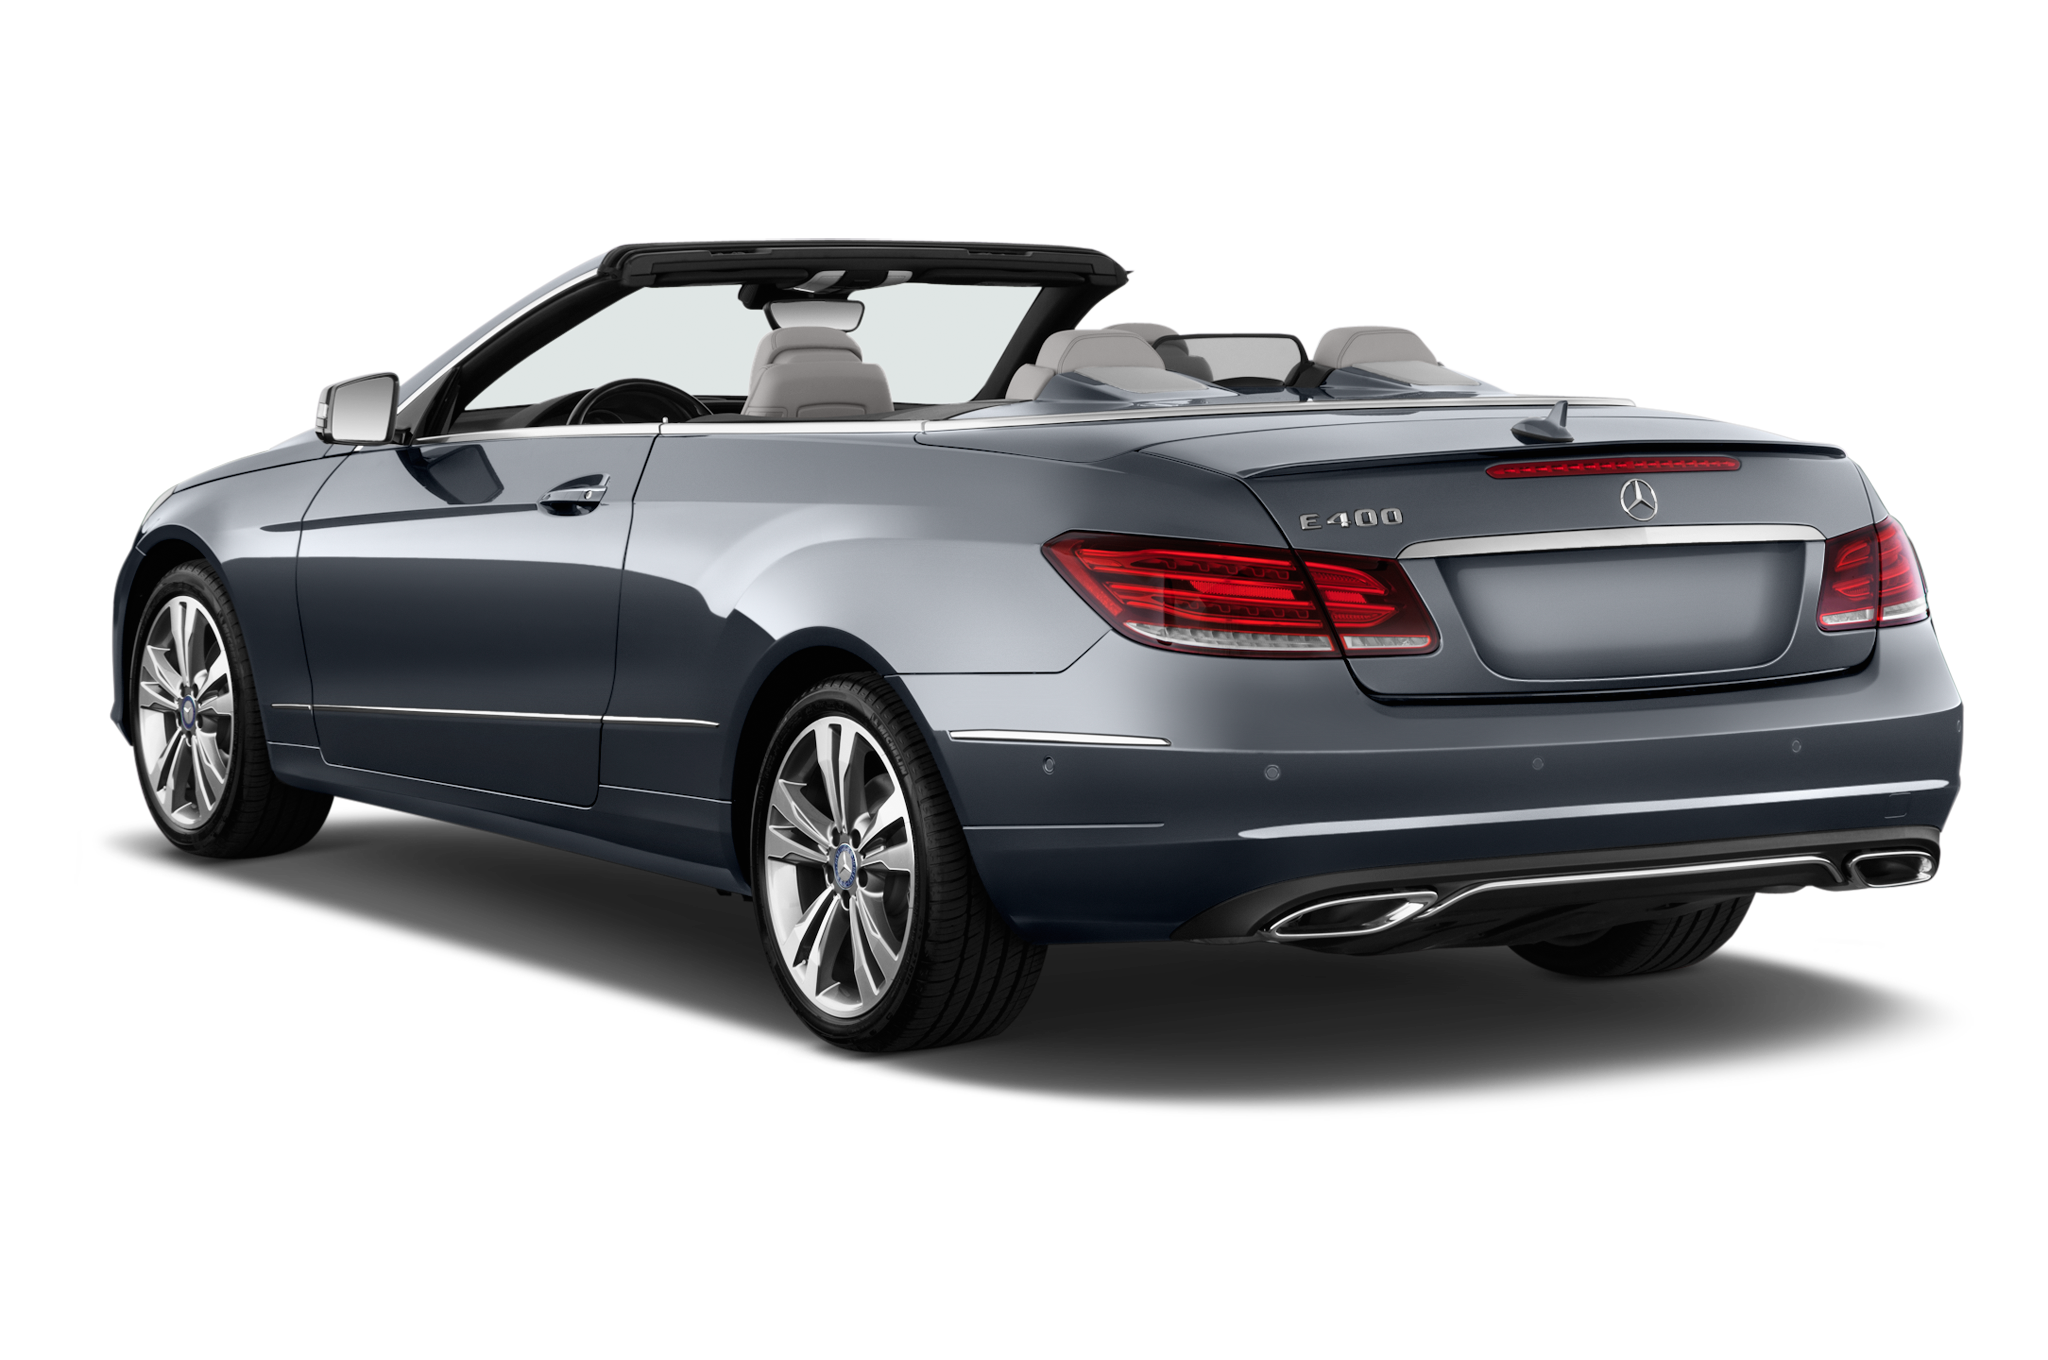 Mercedes benz e class prototype spied in germany - Classe e coupe cabriolet ...